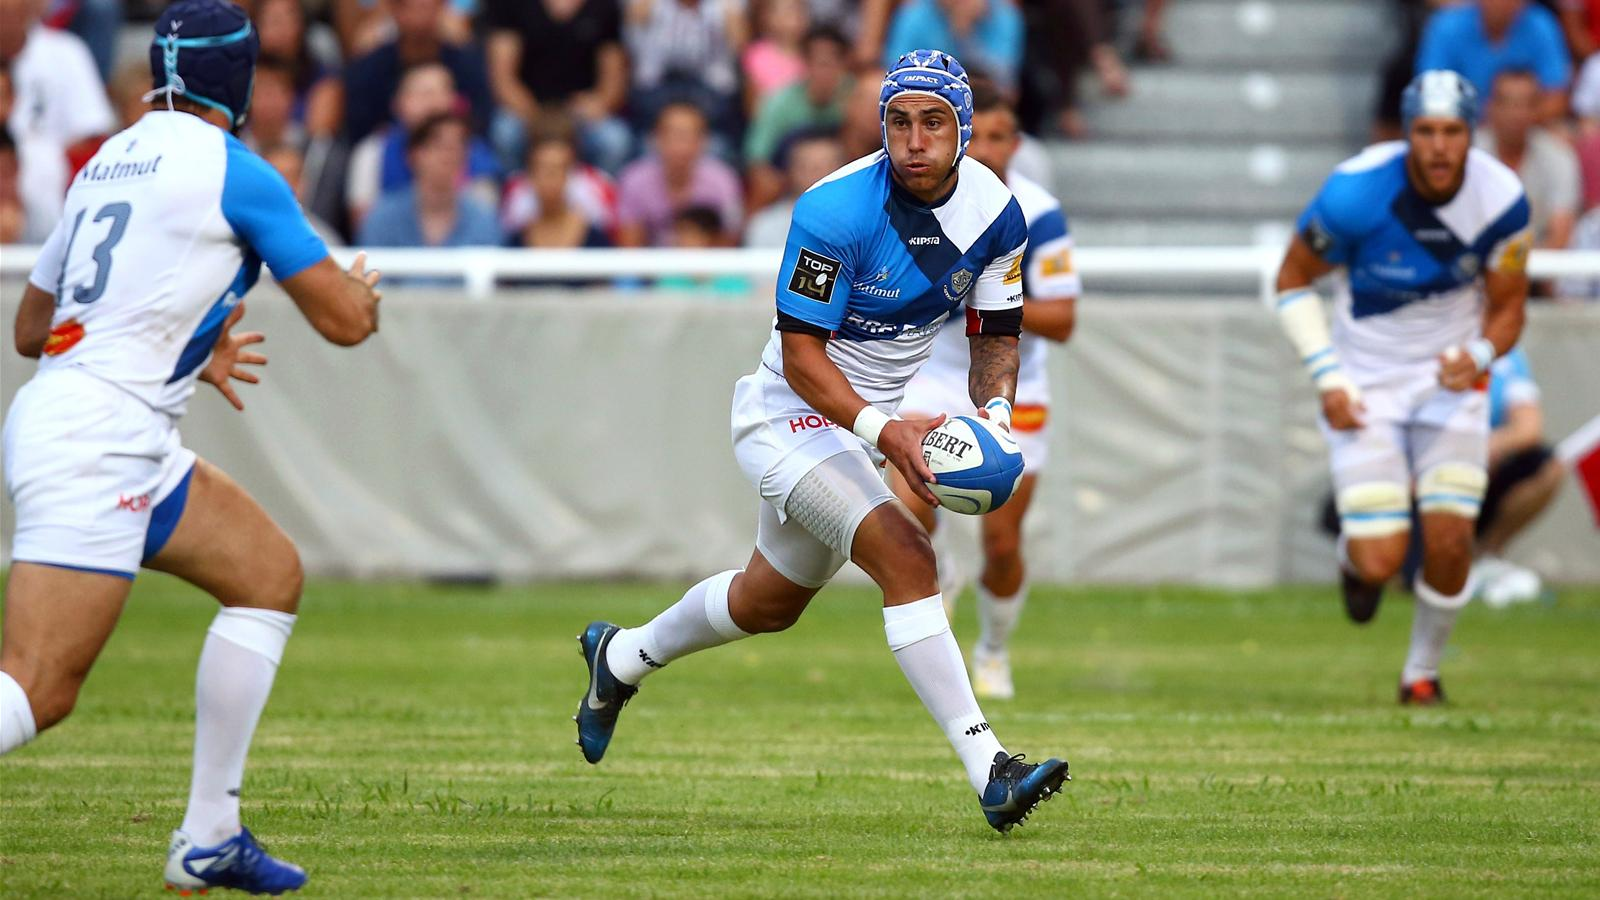 Rugby Castres Olympique vs Oyonnax en direct live streaming